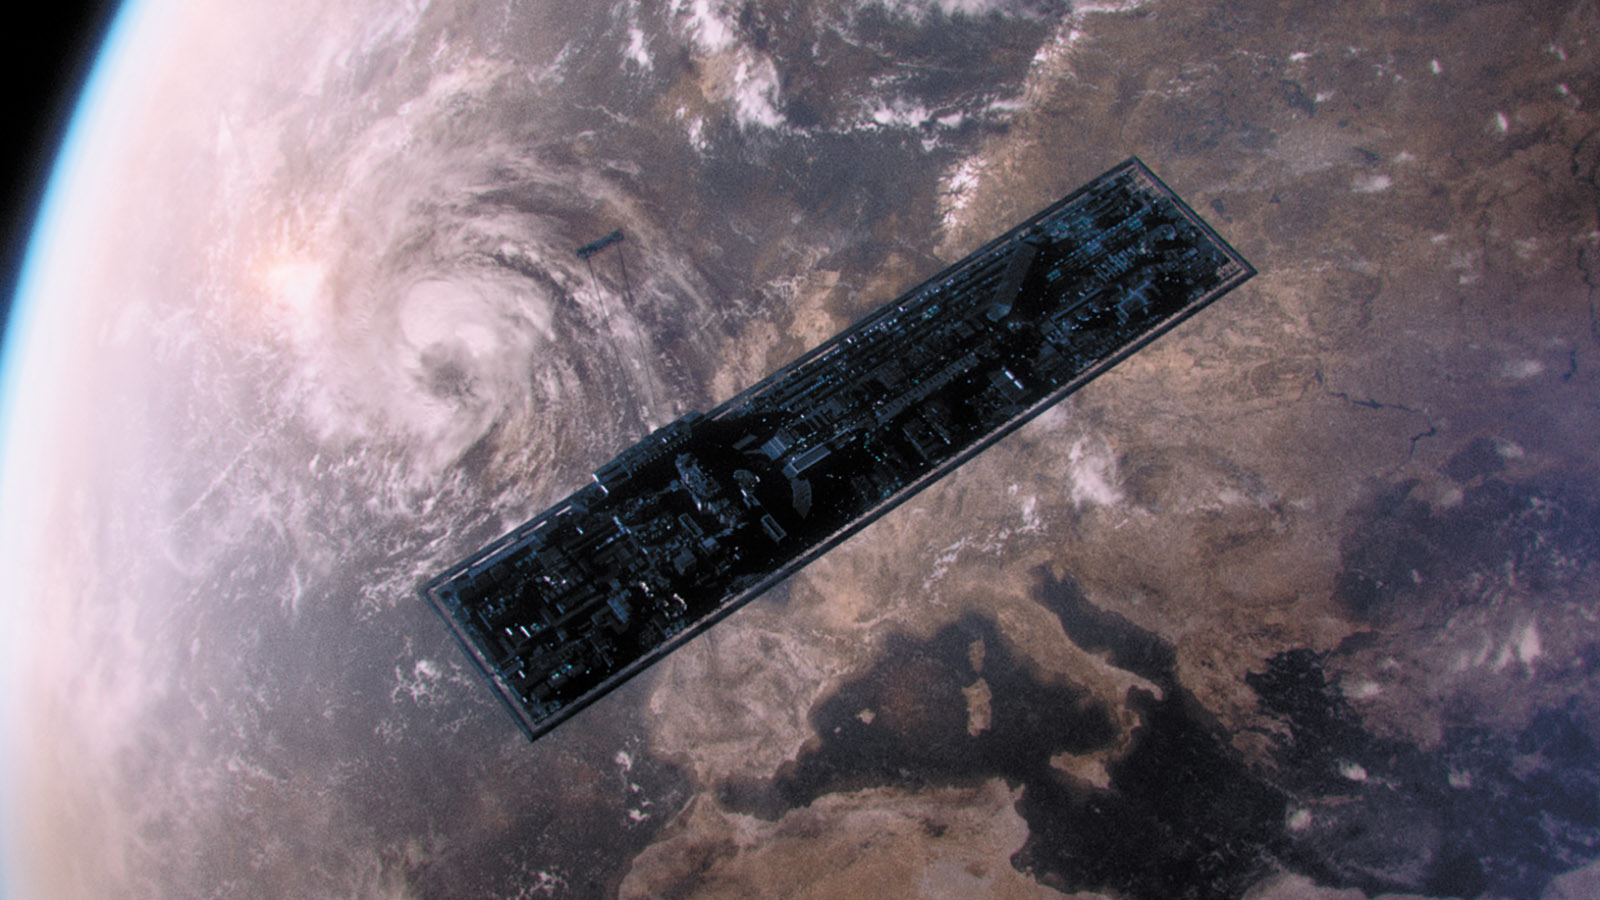 A spacecraft floating above earth in a scene from the film Aniara